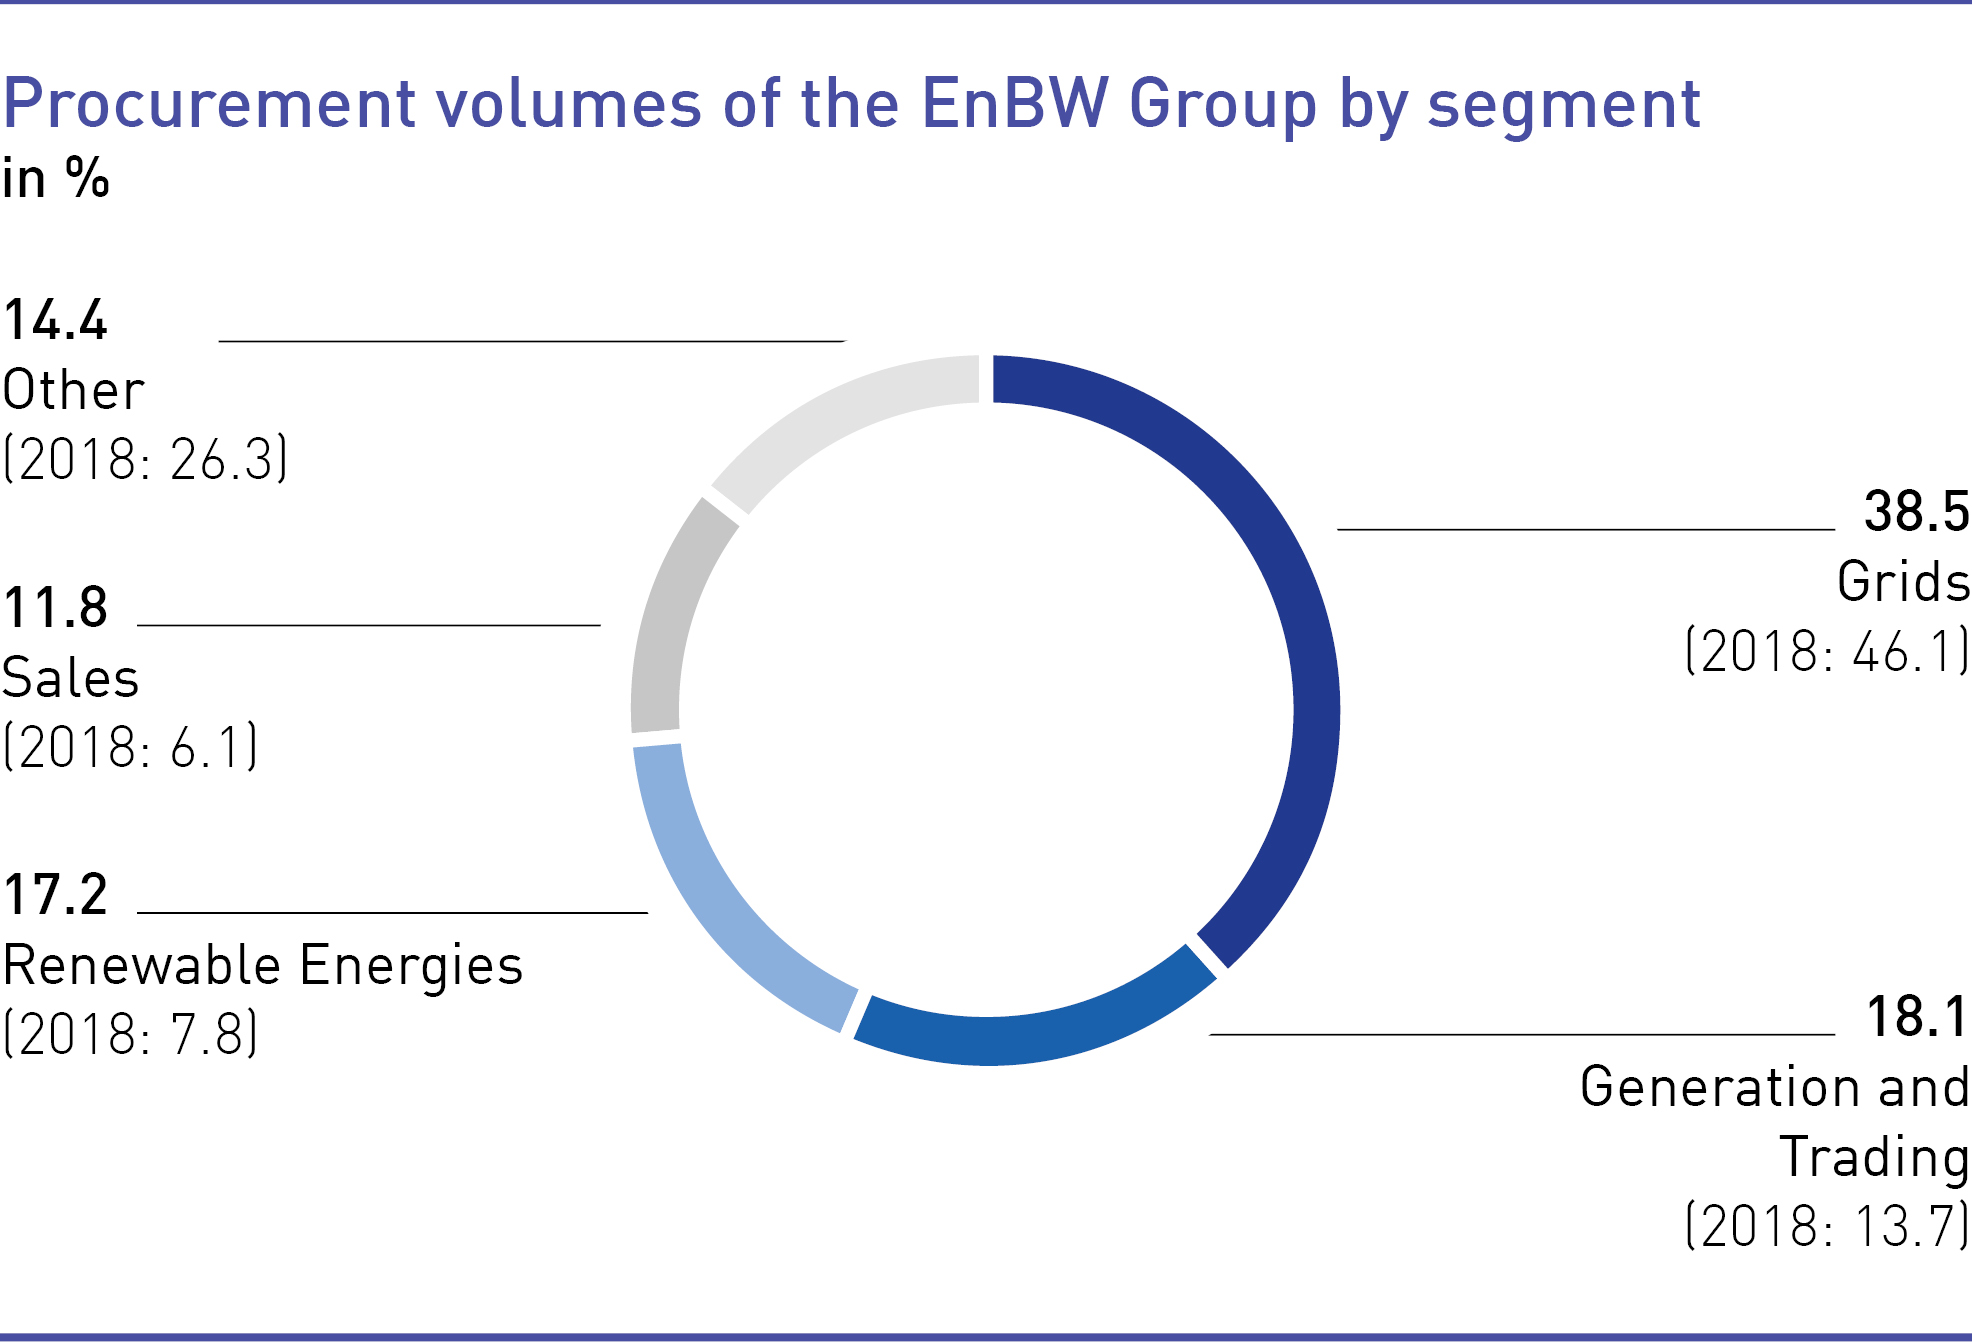 Procurement volumes of the EnBW Group by segment